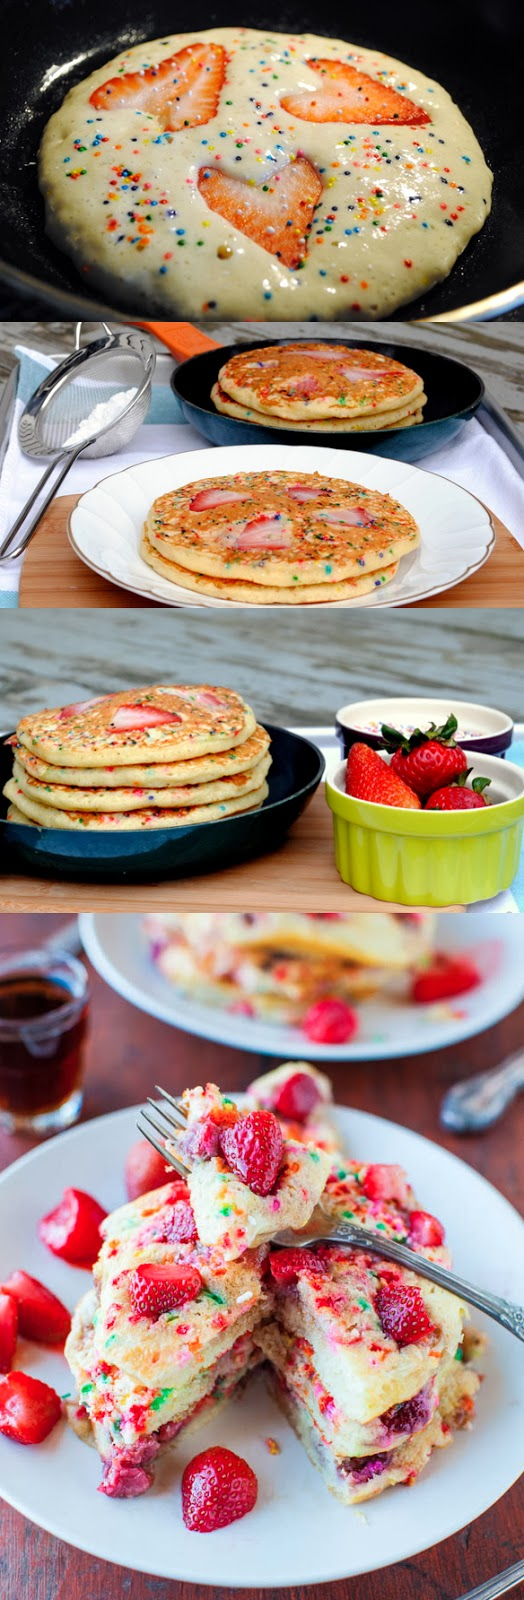 Valentines Roundup - Strawberry & Sprinkles Pancakes